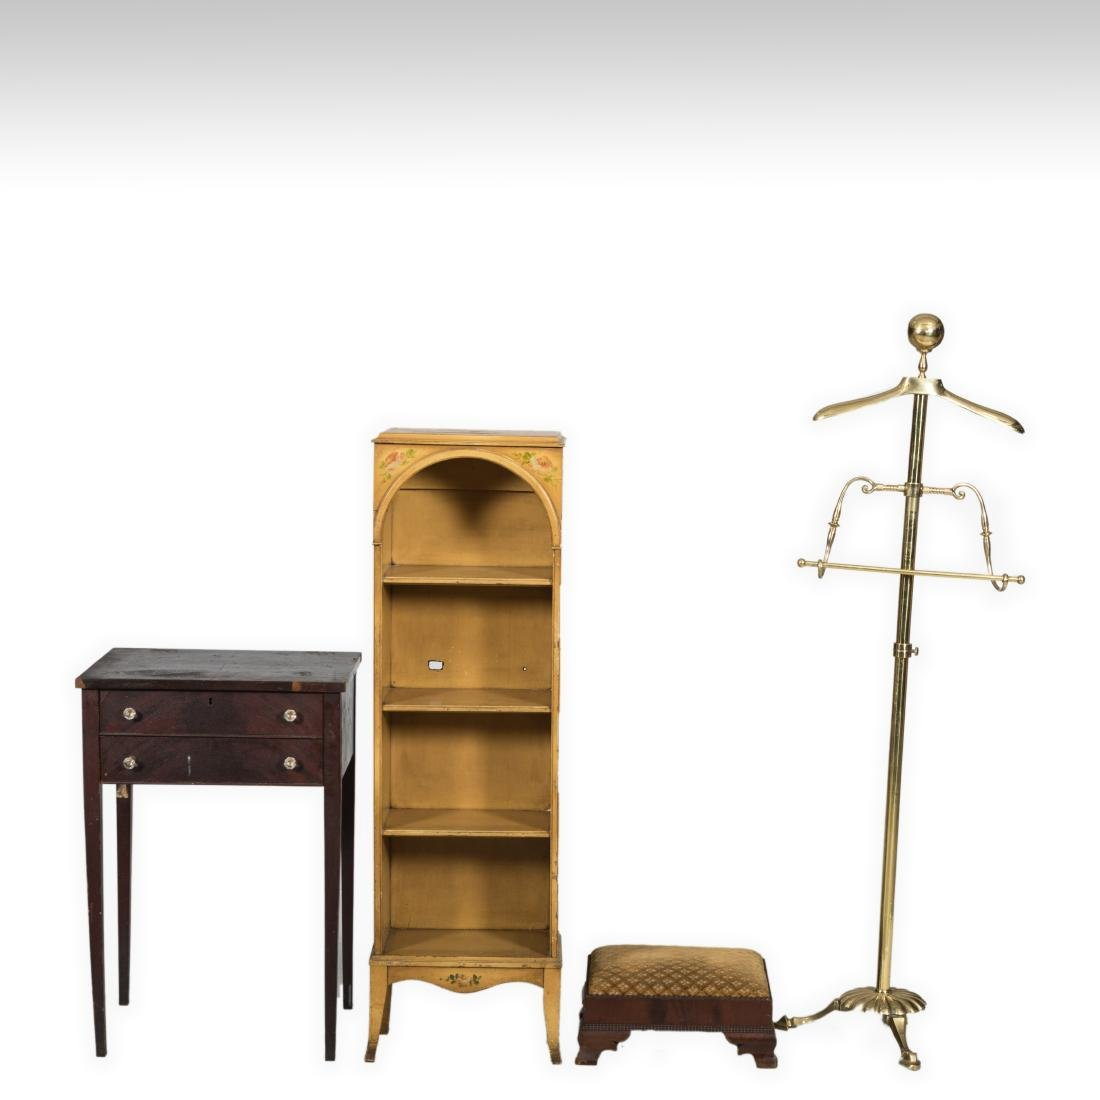 Adams Style Shelf, Stand, Stool and Valet